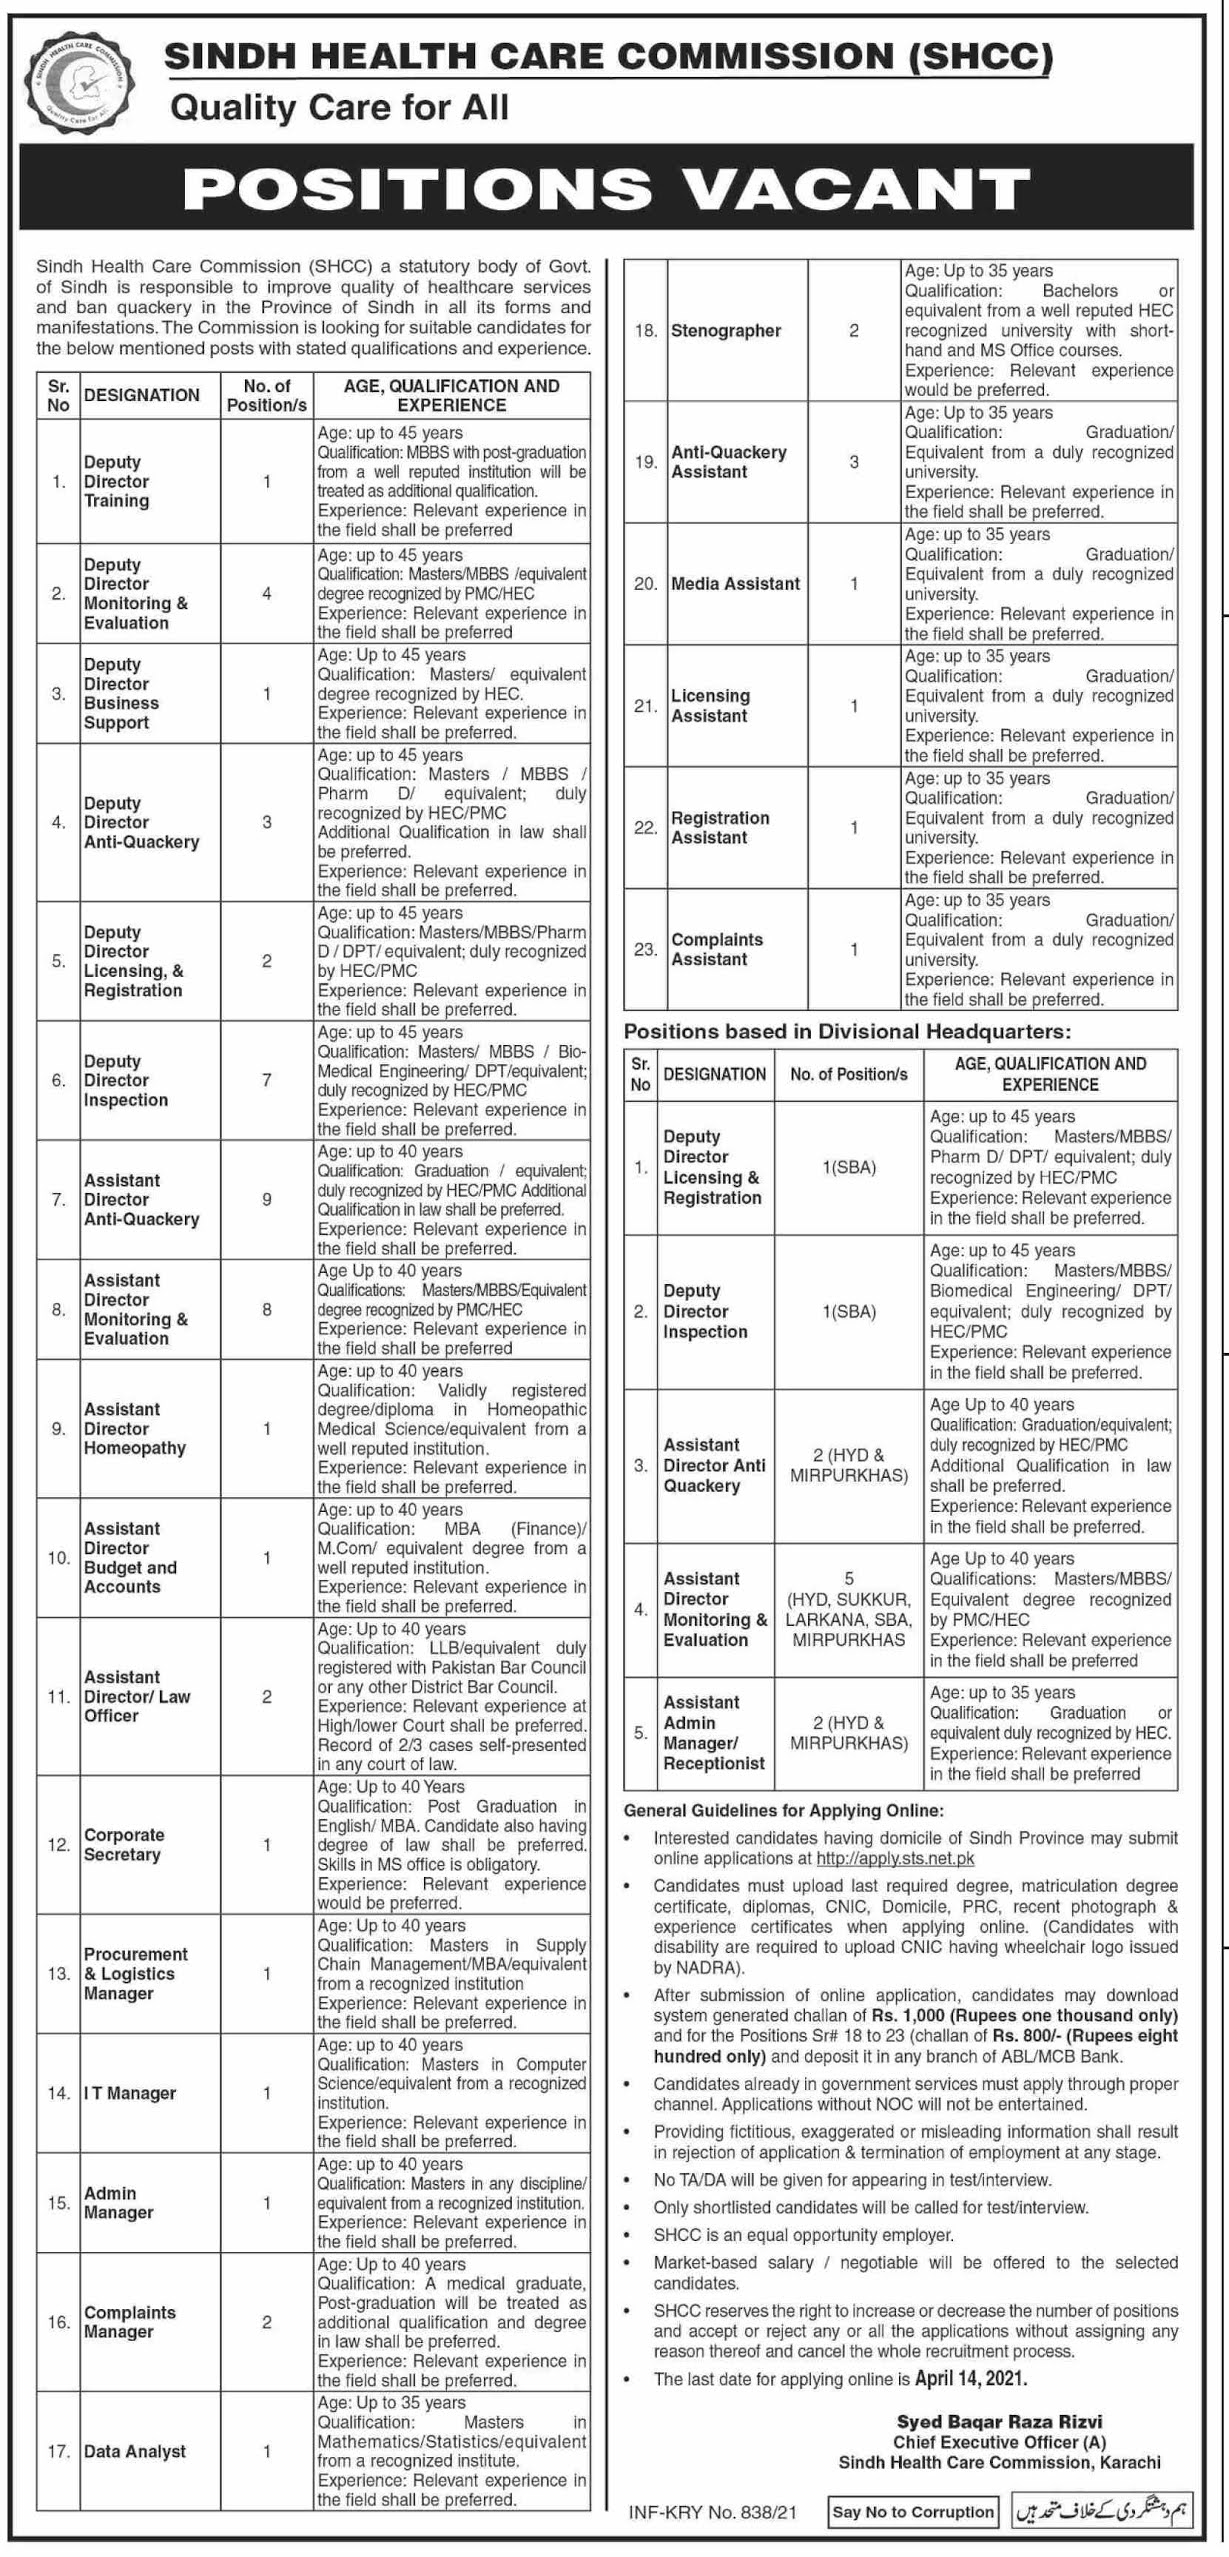 Sindh Health Care Commission 2021 - SHCC Jobs 2021 - SHCC Recruitment - SHCC Vacancies - Online Application Form :- apply.sts.net.pk